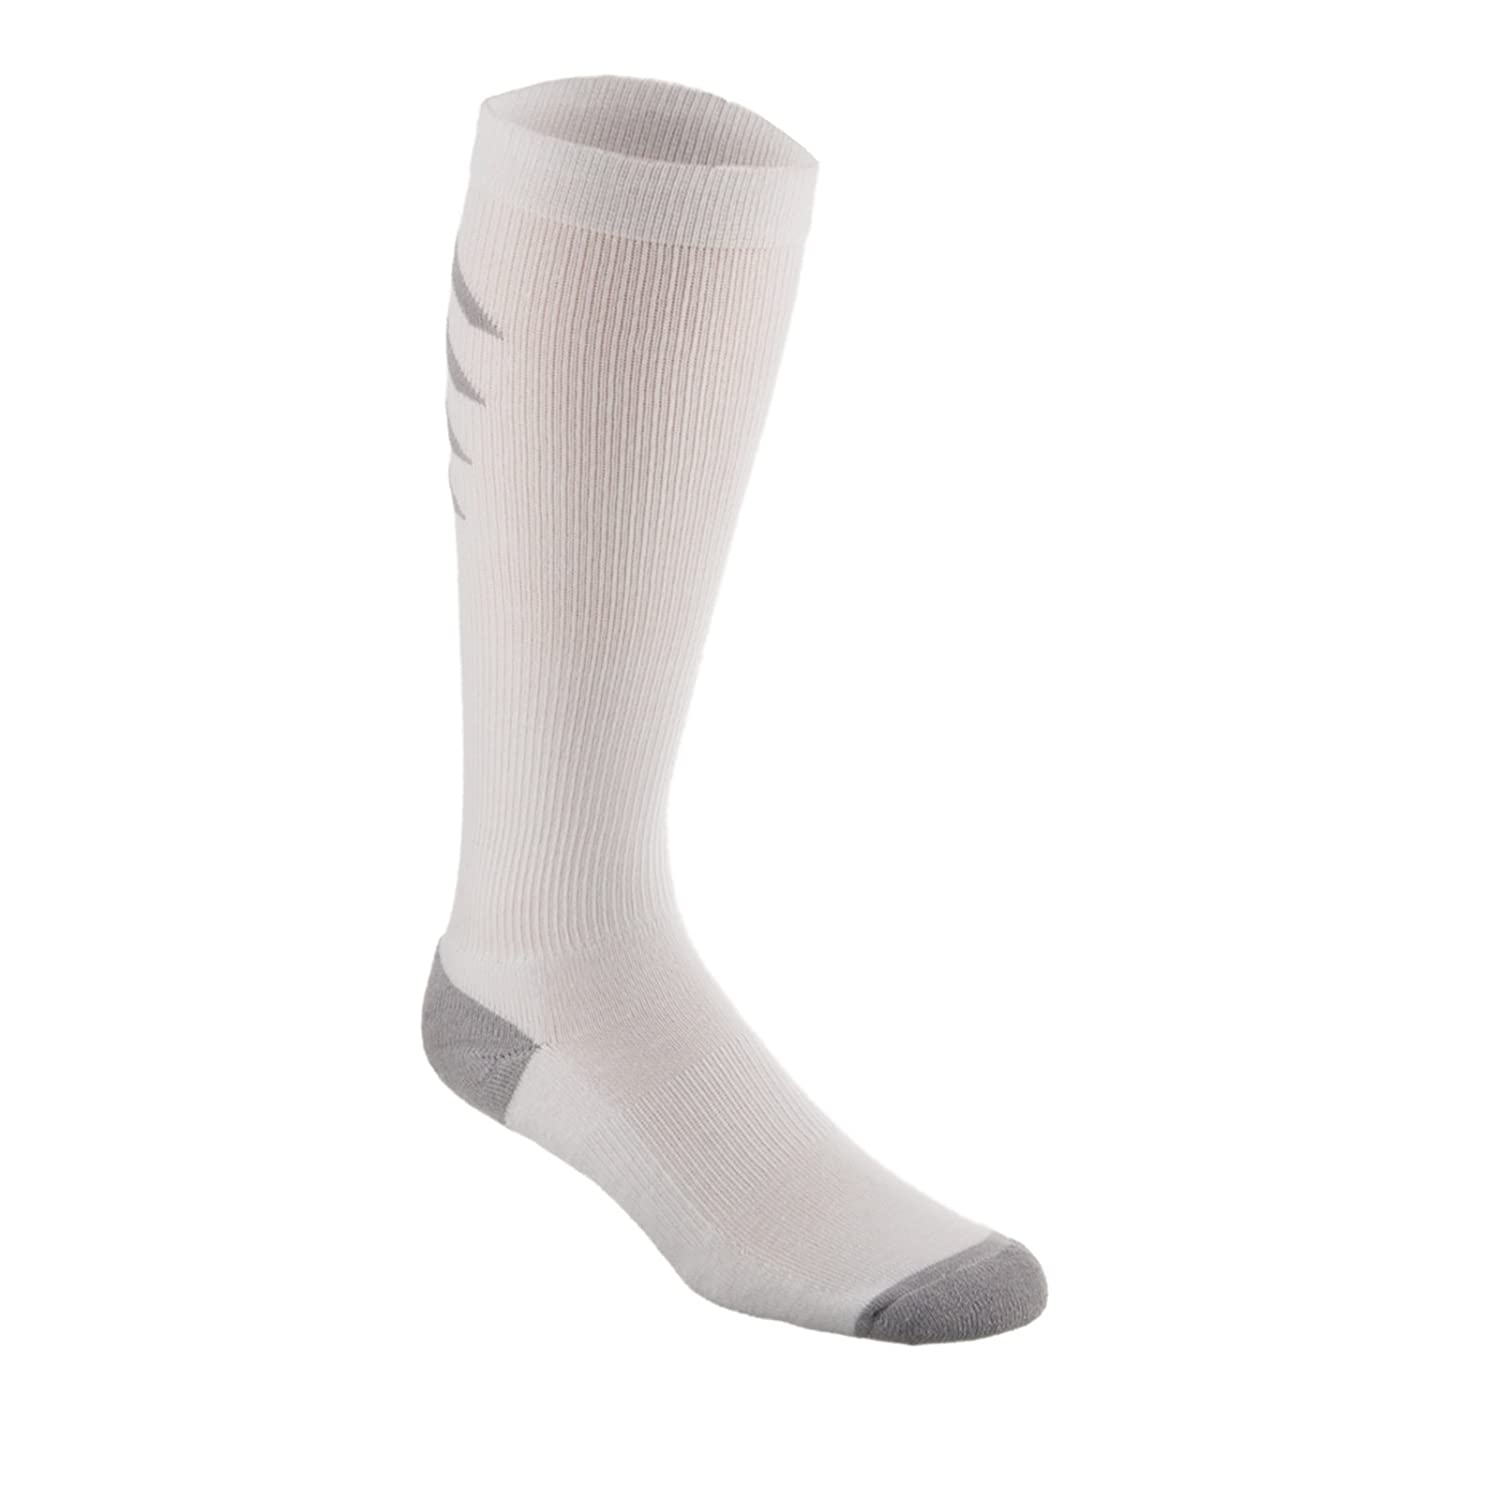 Amazon.com: Mens and Womens 15-20mmHg Athletic Recovery Sock Size: Womens Size D, Color: Black 99: Health & Personal Care